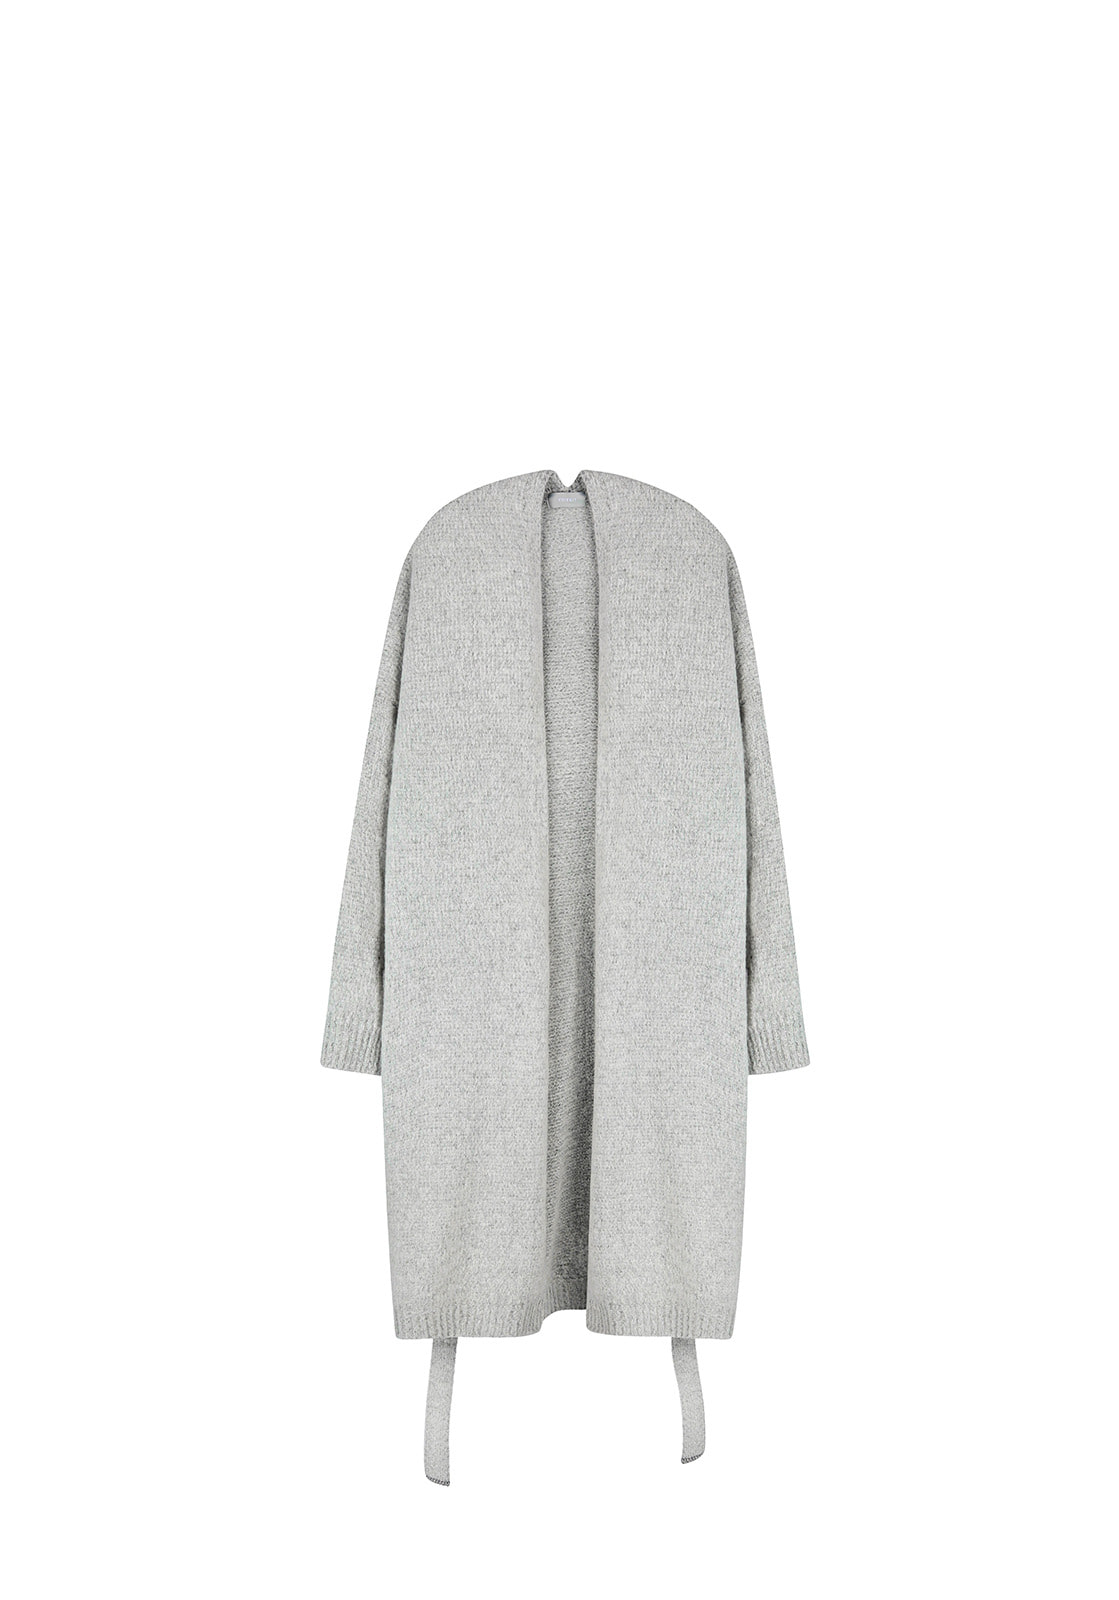 V517 OVERSIZE ROBE LONG CARDIGANGRAY